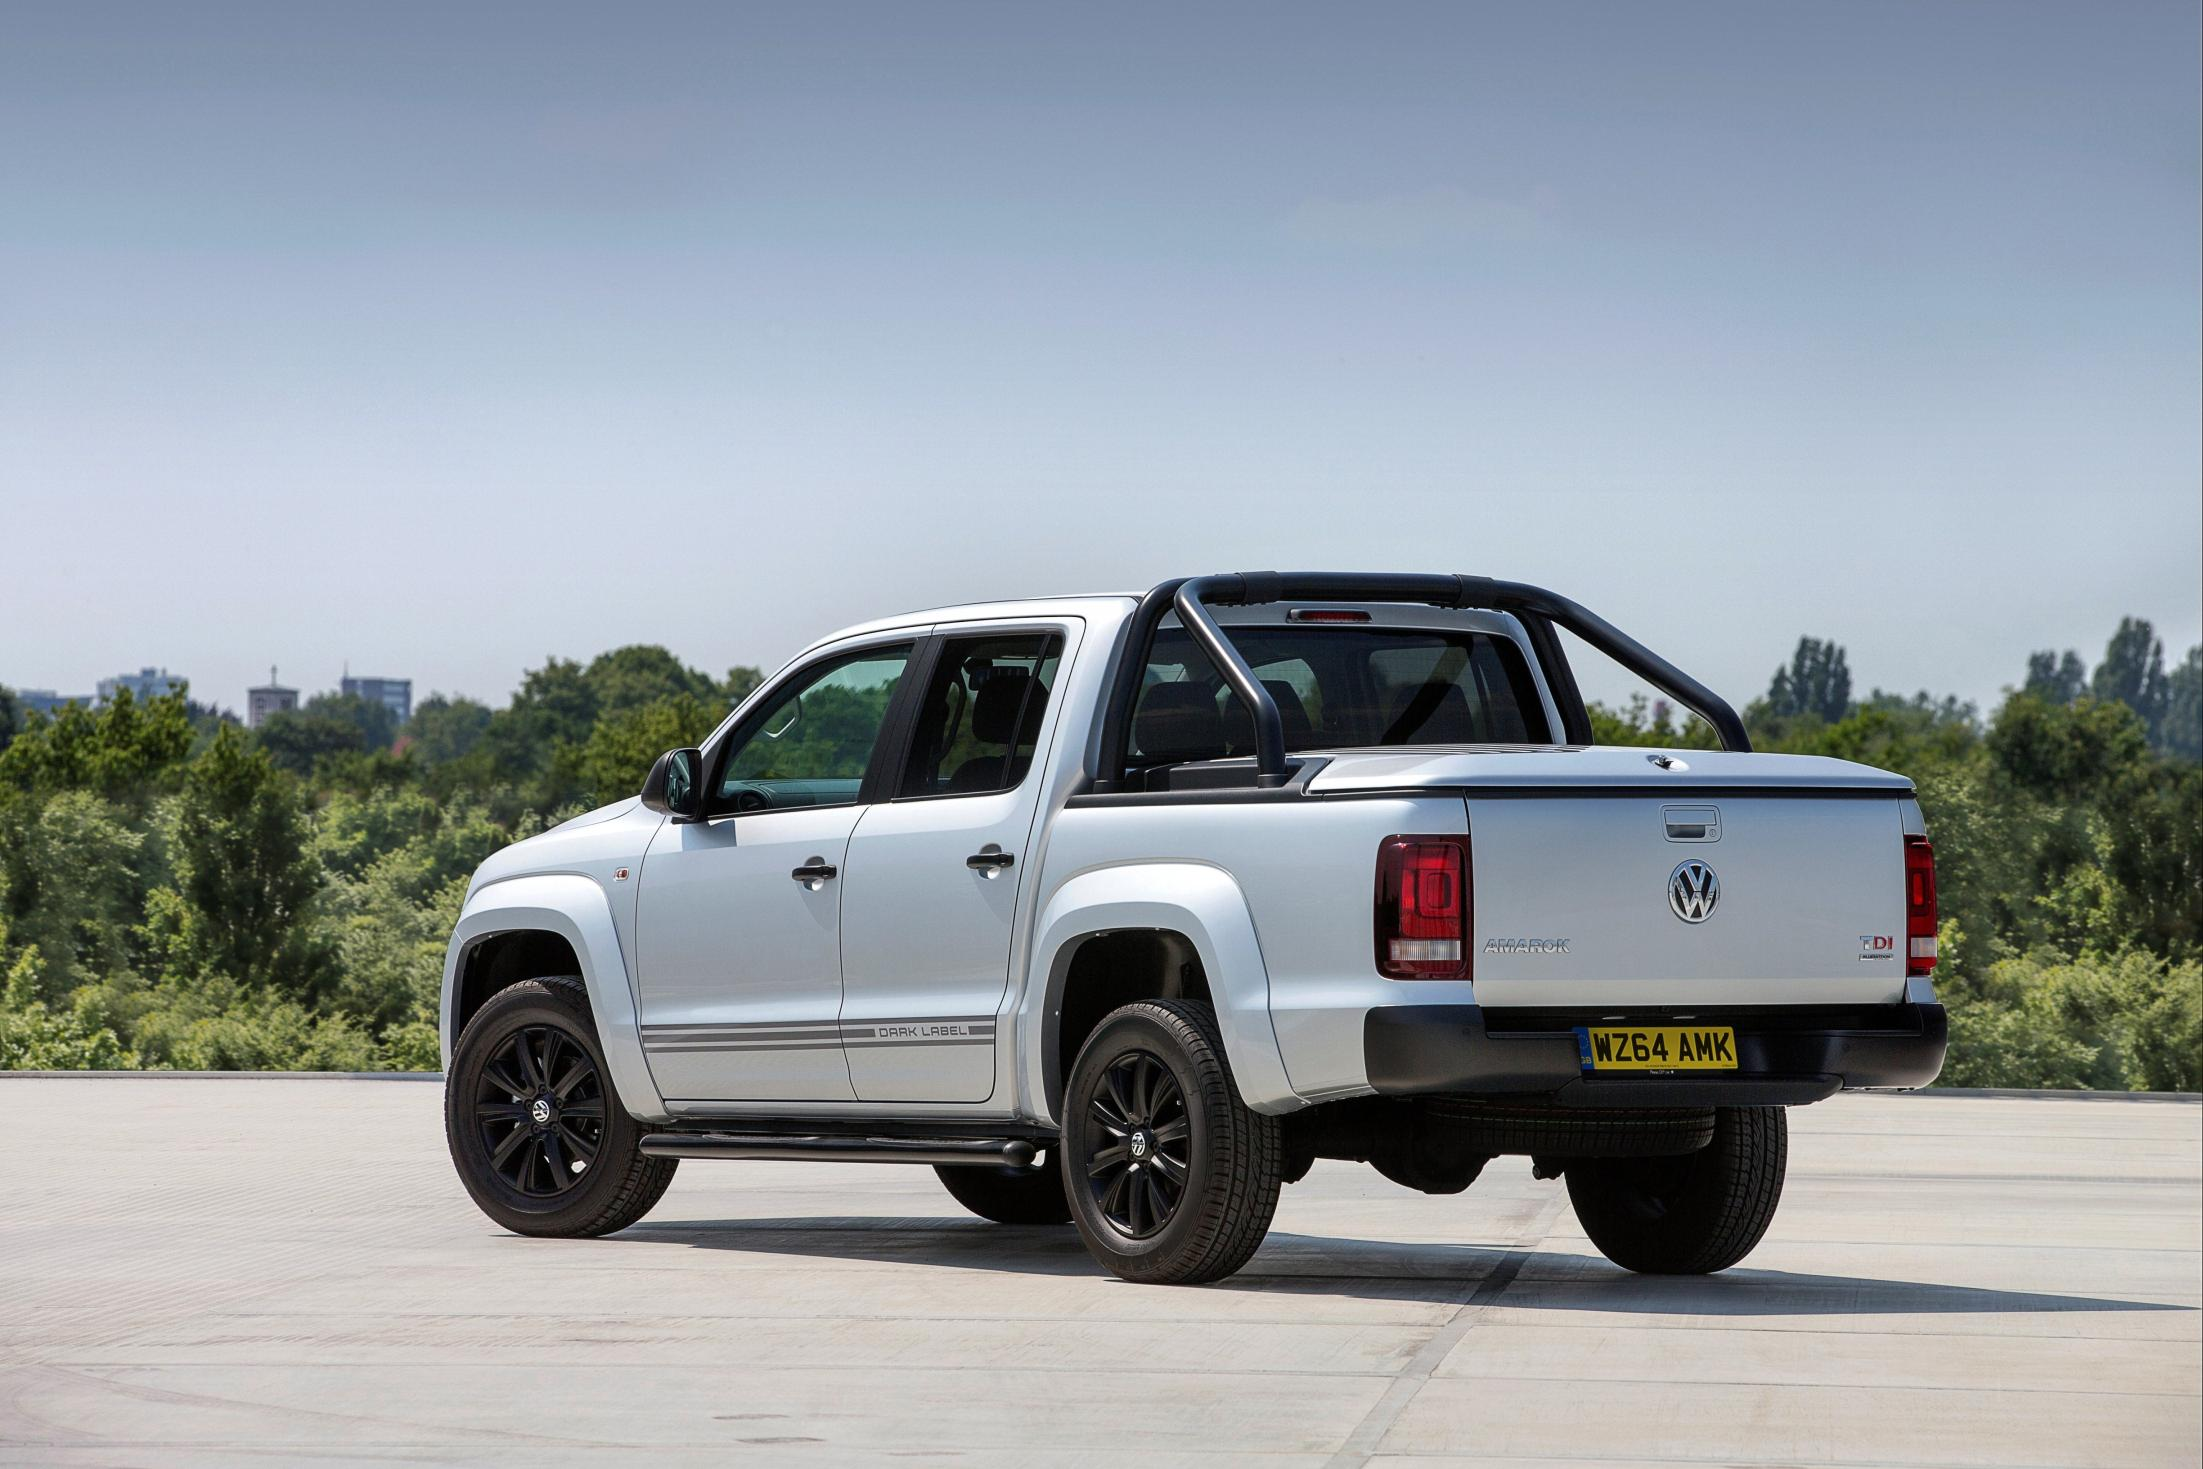 Vw Amarok Modified >> Volkswagen Amarok Dark Label Priced in the UK from £26,125 - autoevolution